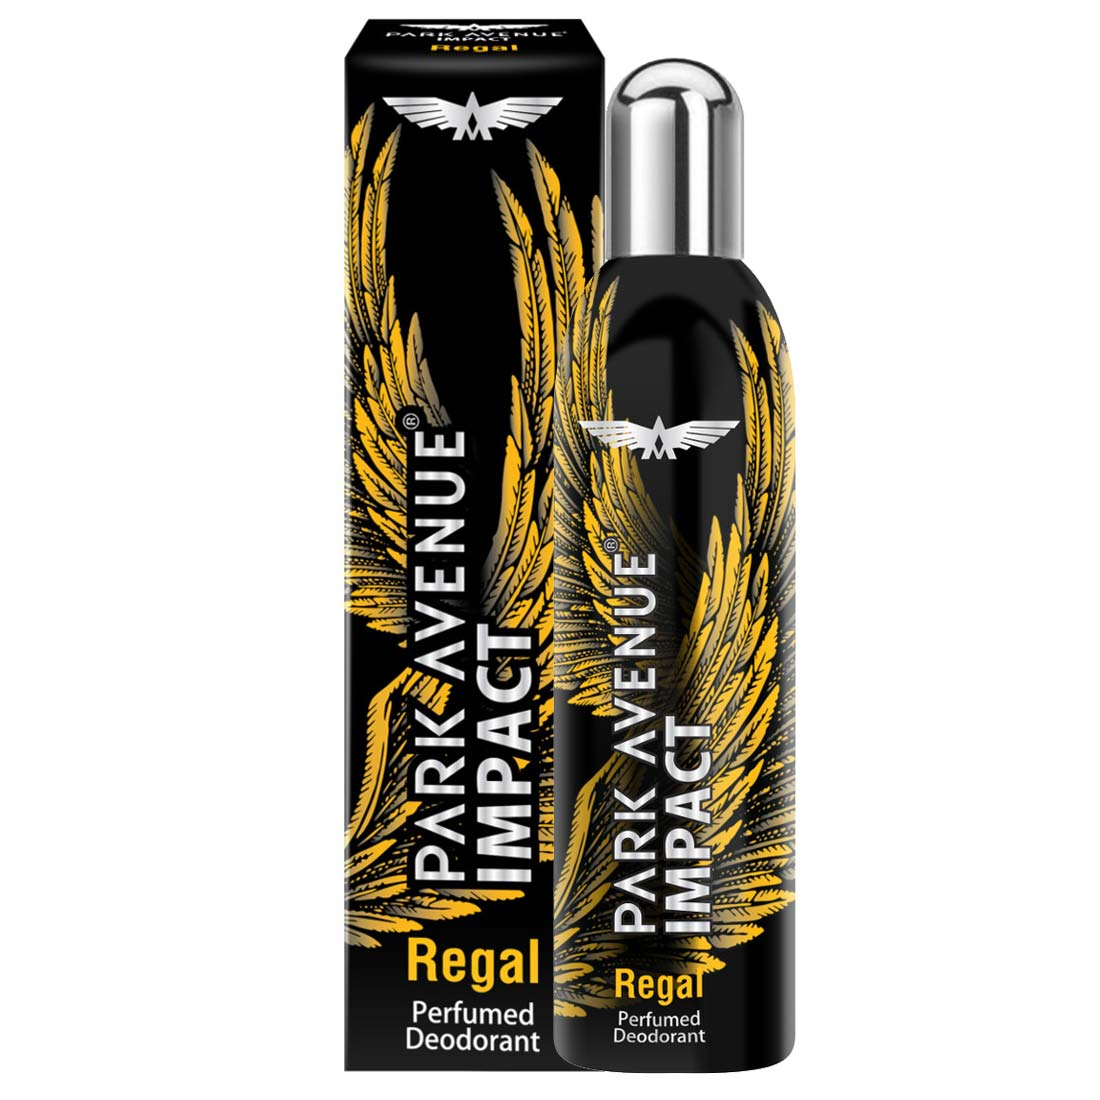 Park Avenue Impact Regal No Gas Deodorant With Fragrance Lock Technology